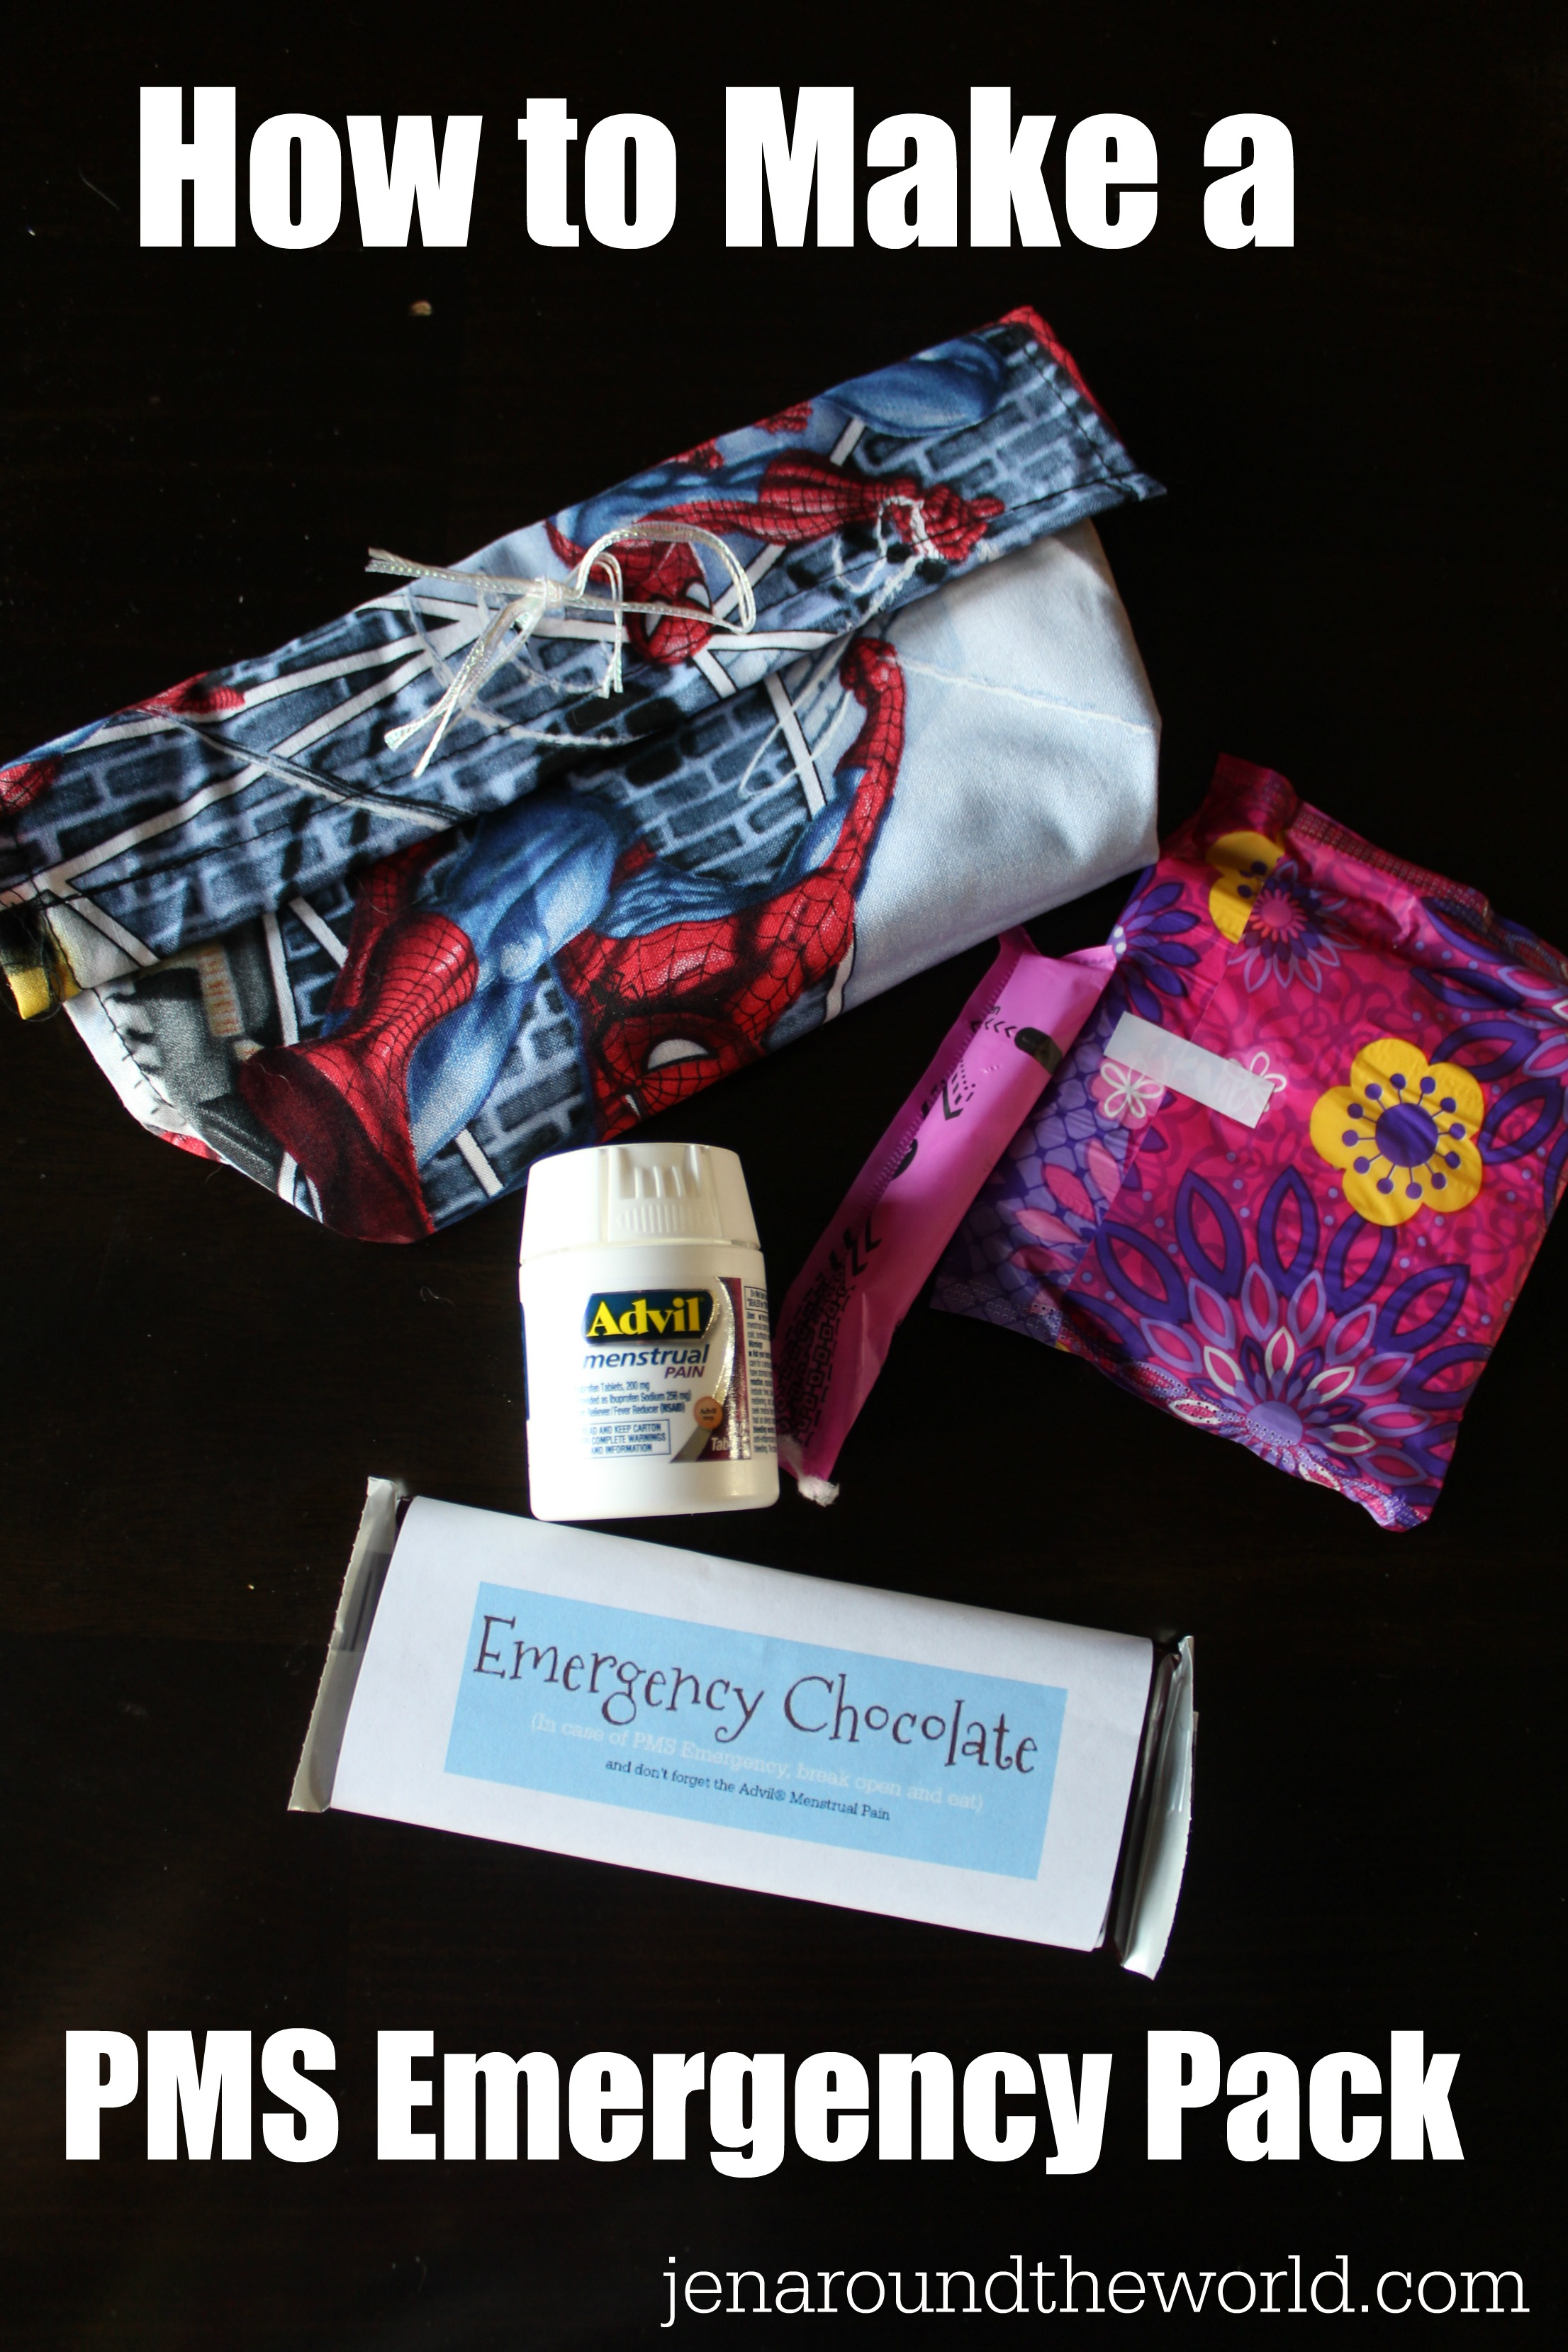 pms-emergency-pack-hero-image